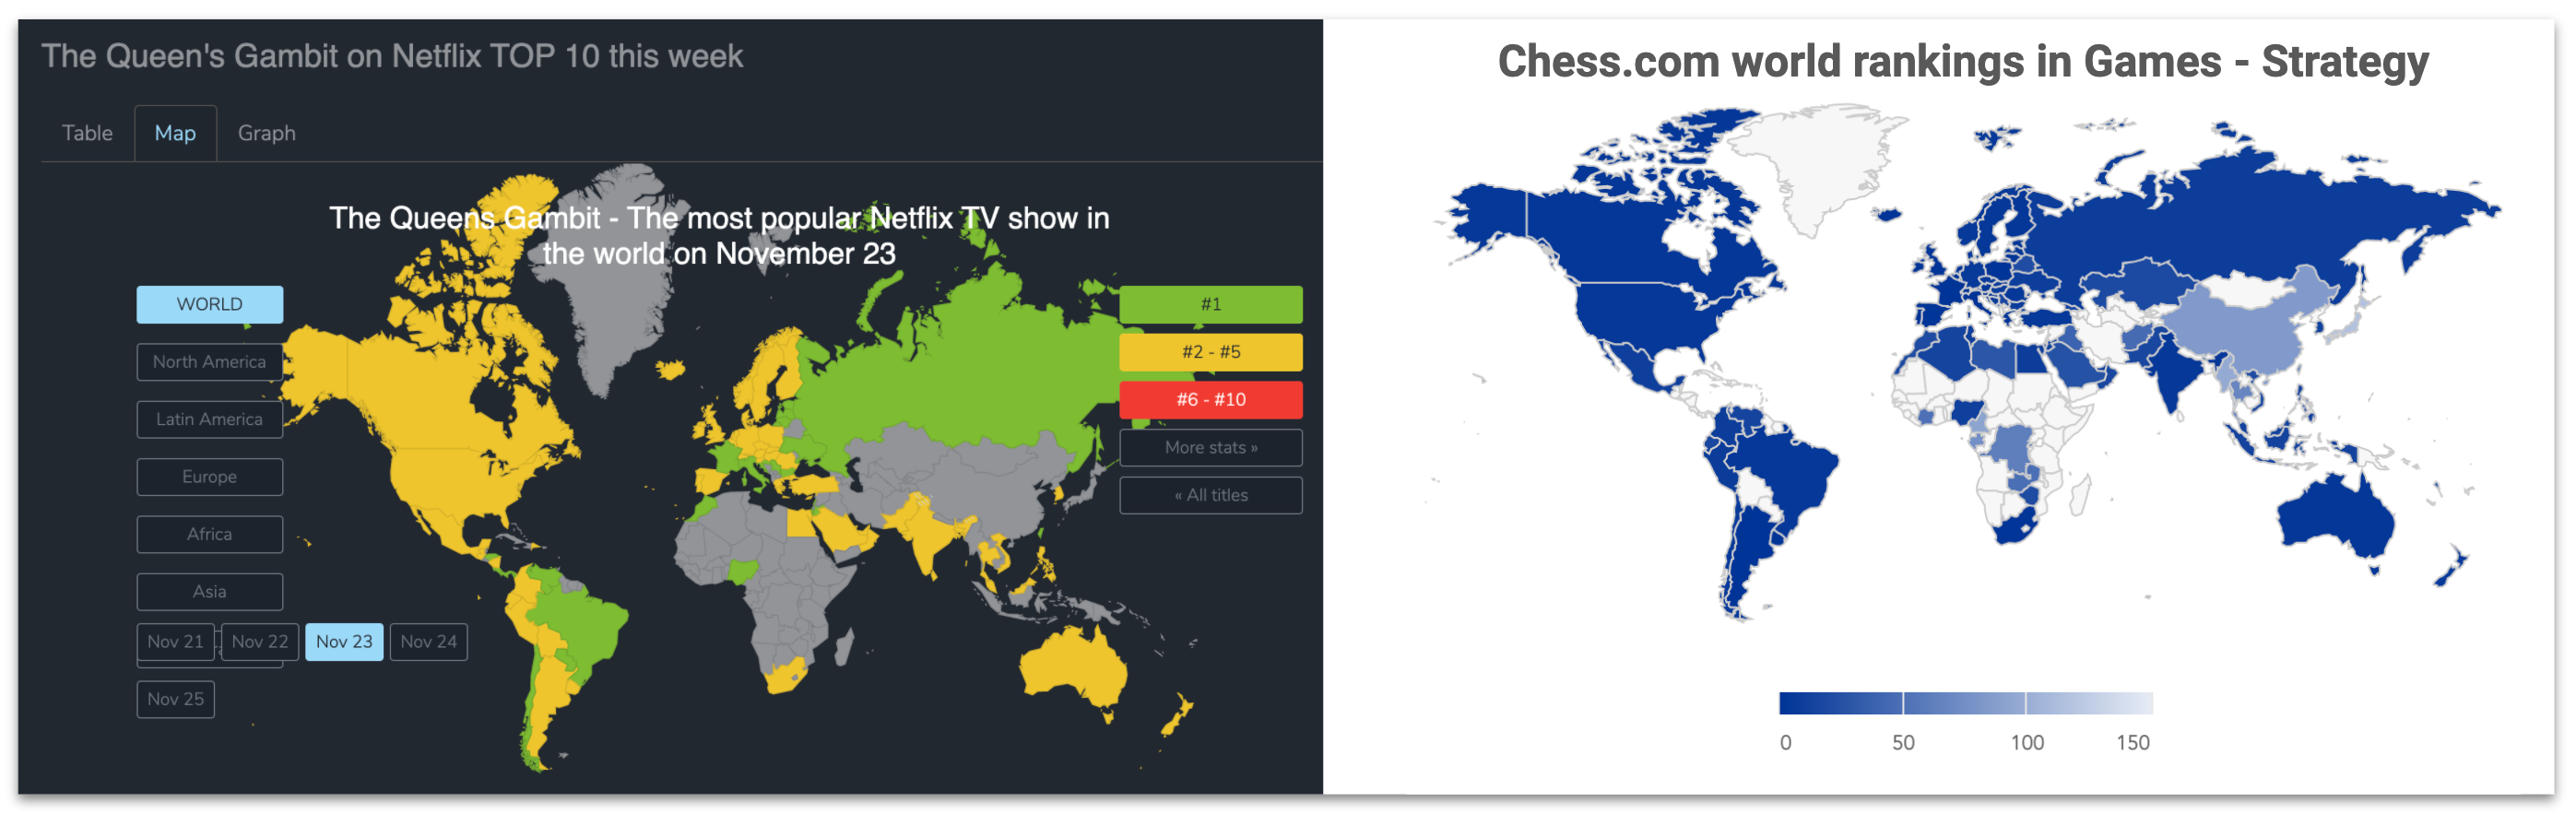 World maps of Netflix rankings & iOS game strategy category rankings